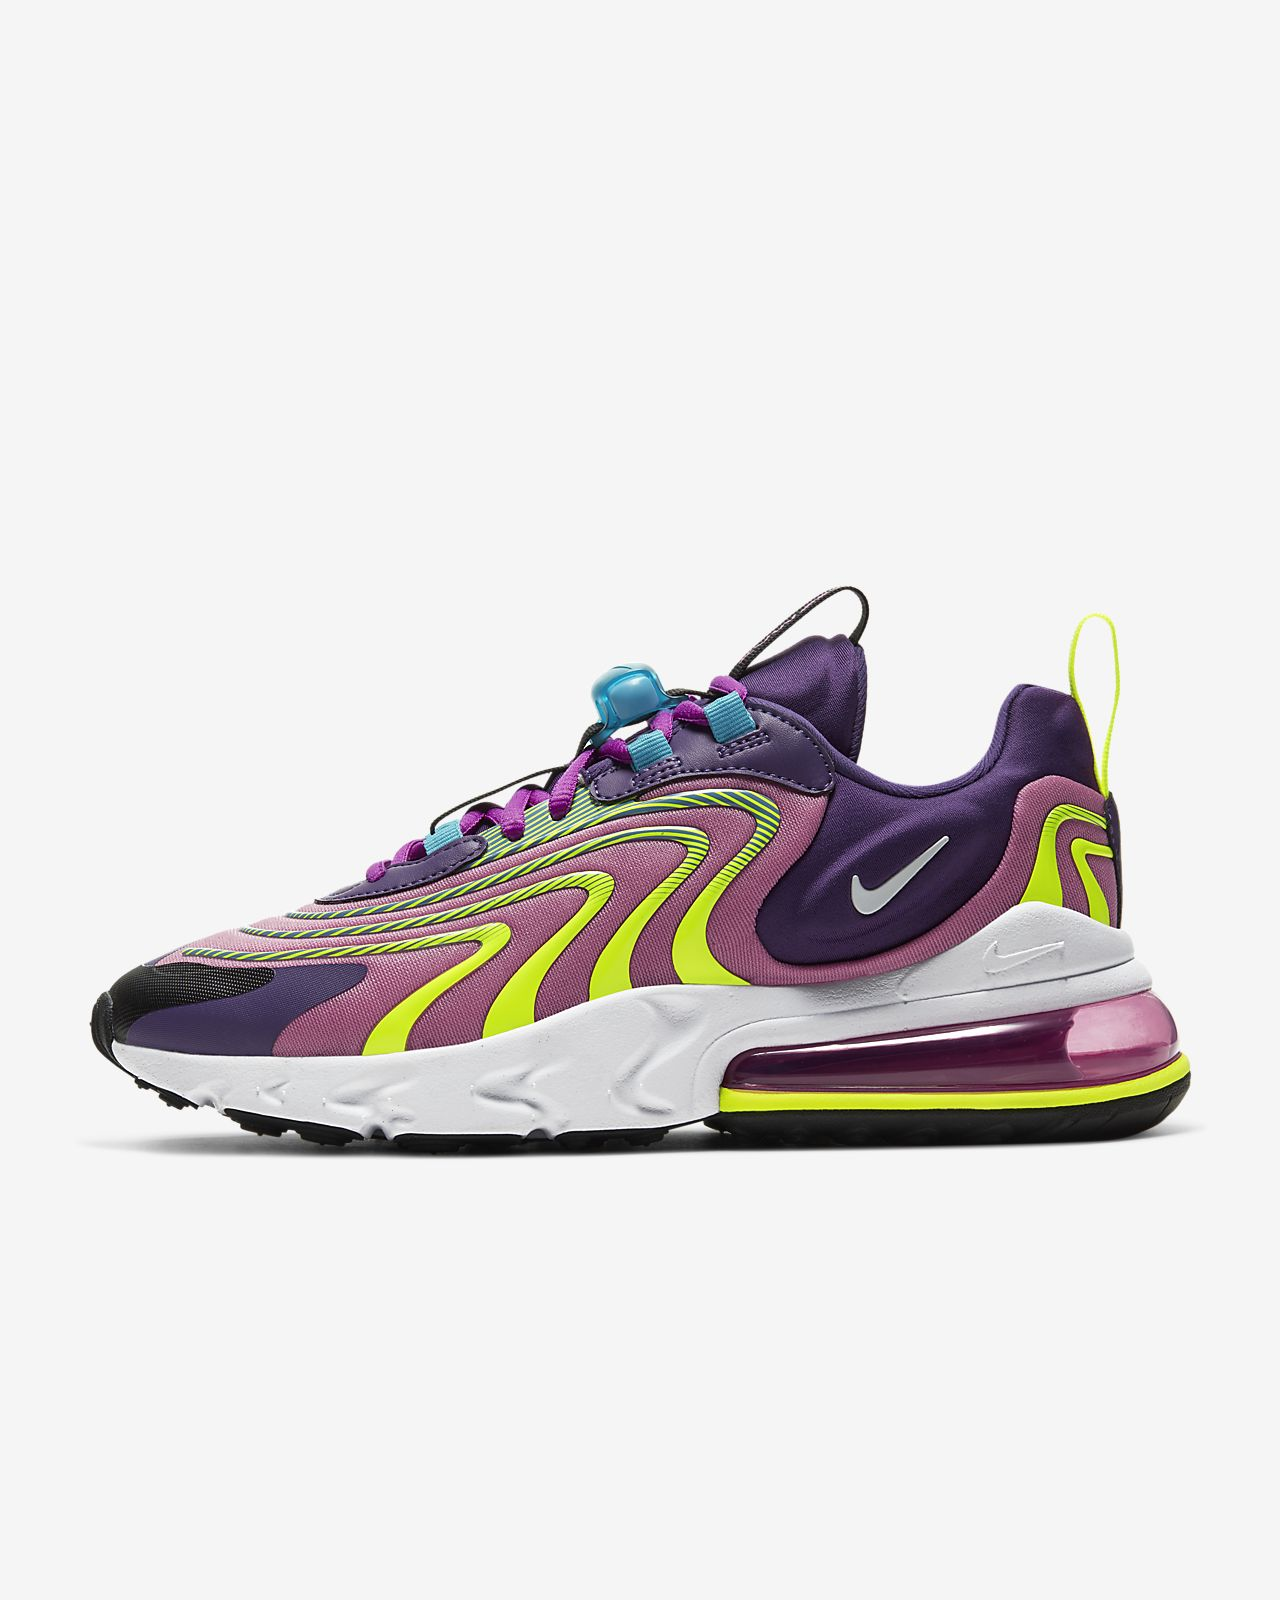 Nike Air Max 270 React ENG Damesschoen